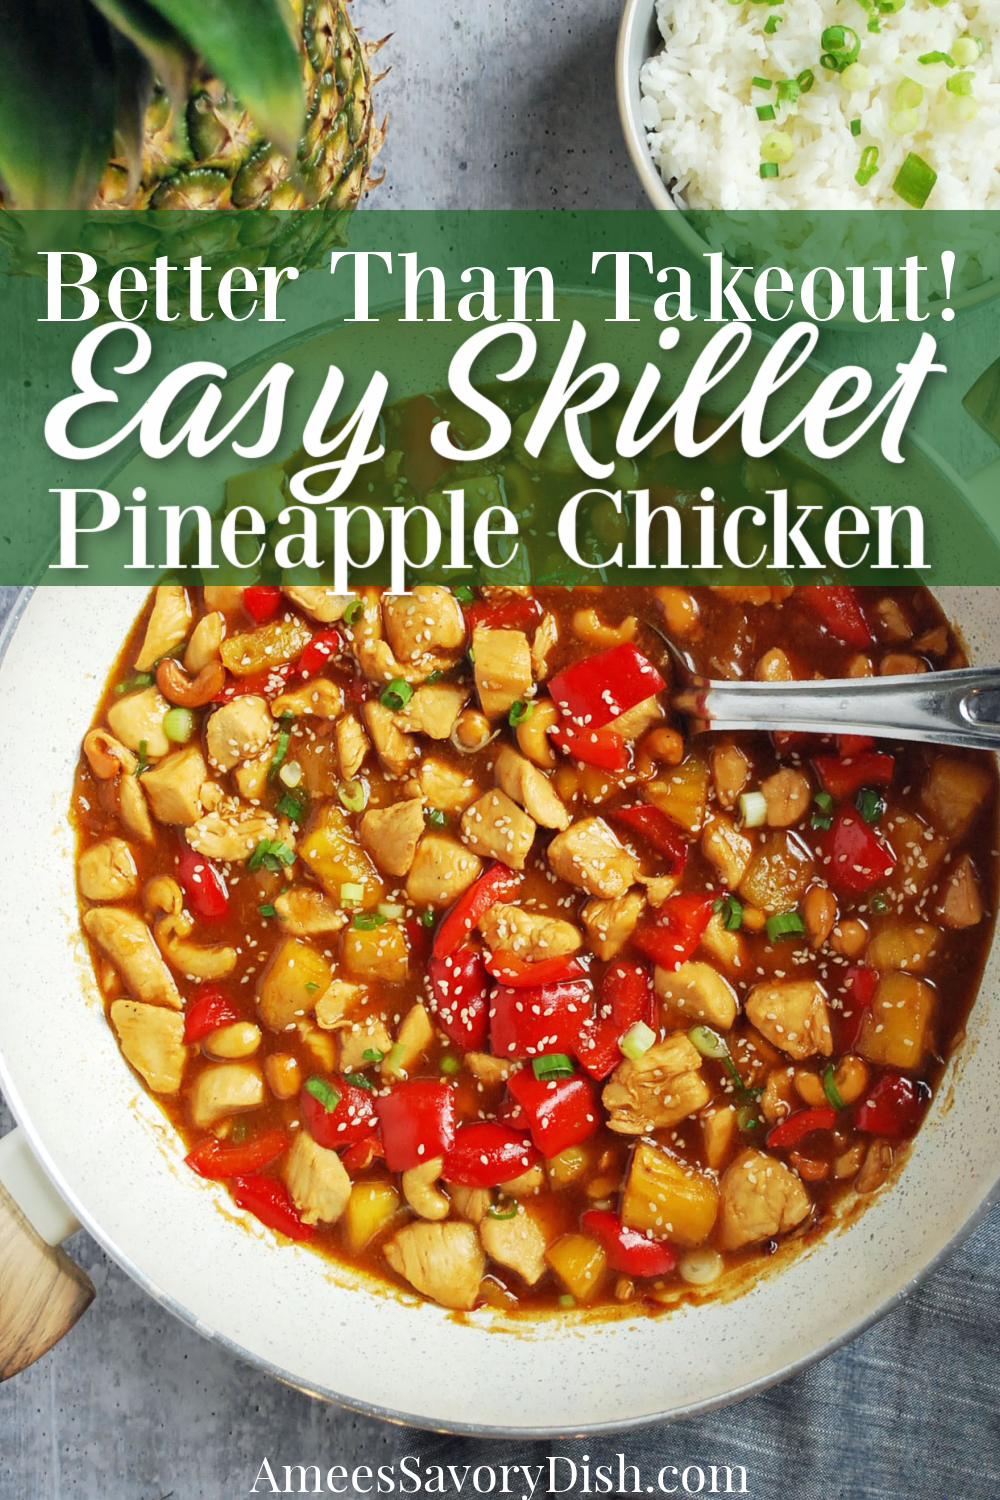 This healthier Chinese-style pineapple chicken is made with boneless chicken breast, red pepper, fresh pineapple, & cashews and ready in under 30 minutes.  #pineapplechicken #skilletchicken #chicken #chinesechicken #easyasian #chickenrecipe #skilletdinner via @Ameessavorydish